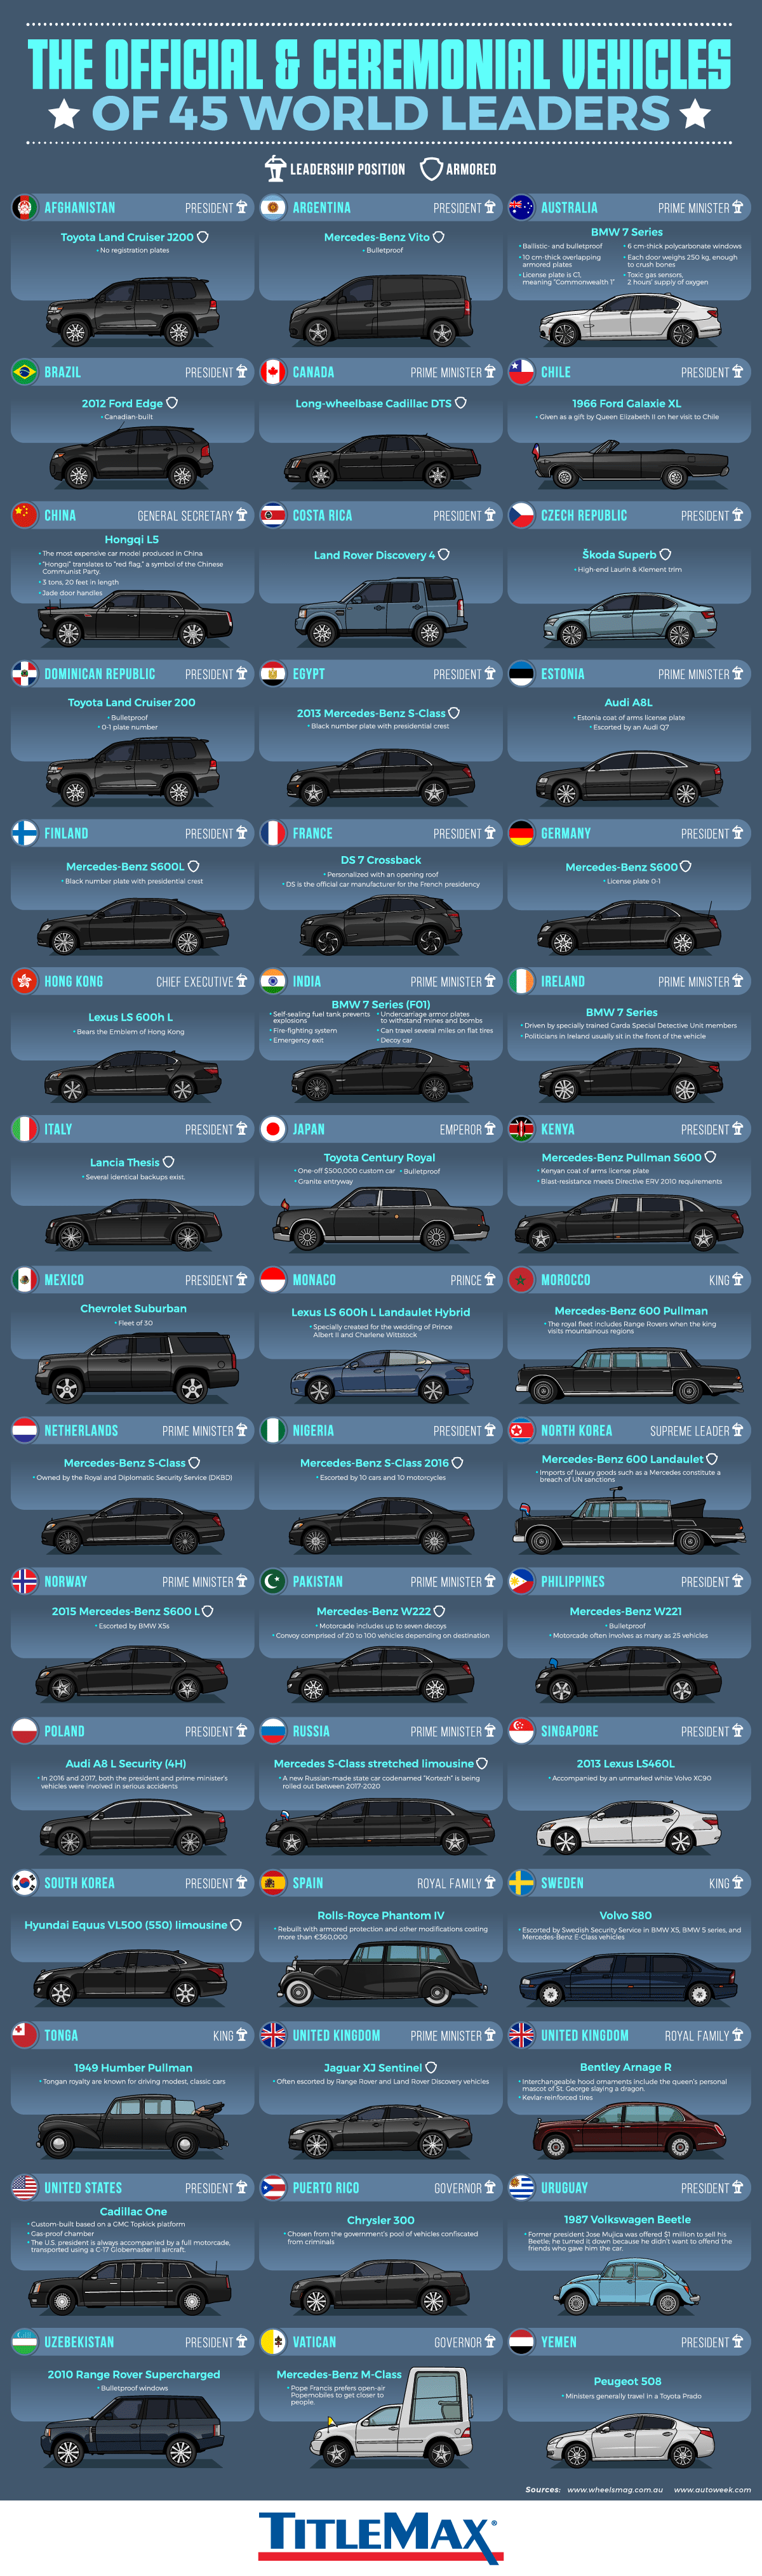 Official Ceremonial Vehicles of World Leaders